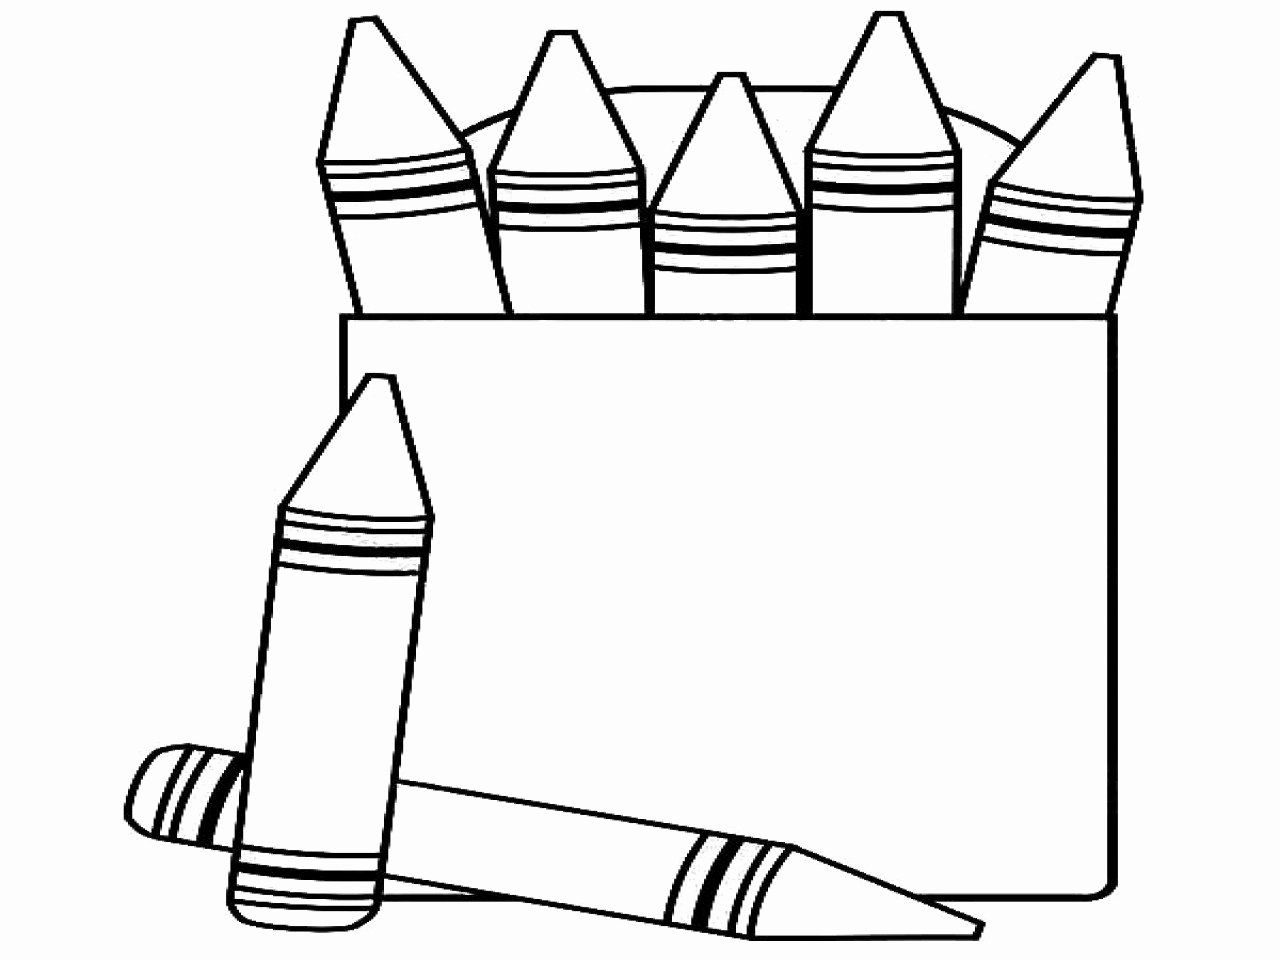 Crayon Coloring Pages Printable Unique Coloring Pages And Books Crayonoring Page Crayola Template Coloring Pages Crayon Box Cute Coloring Pages